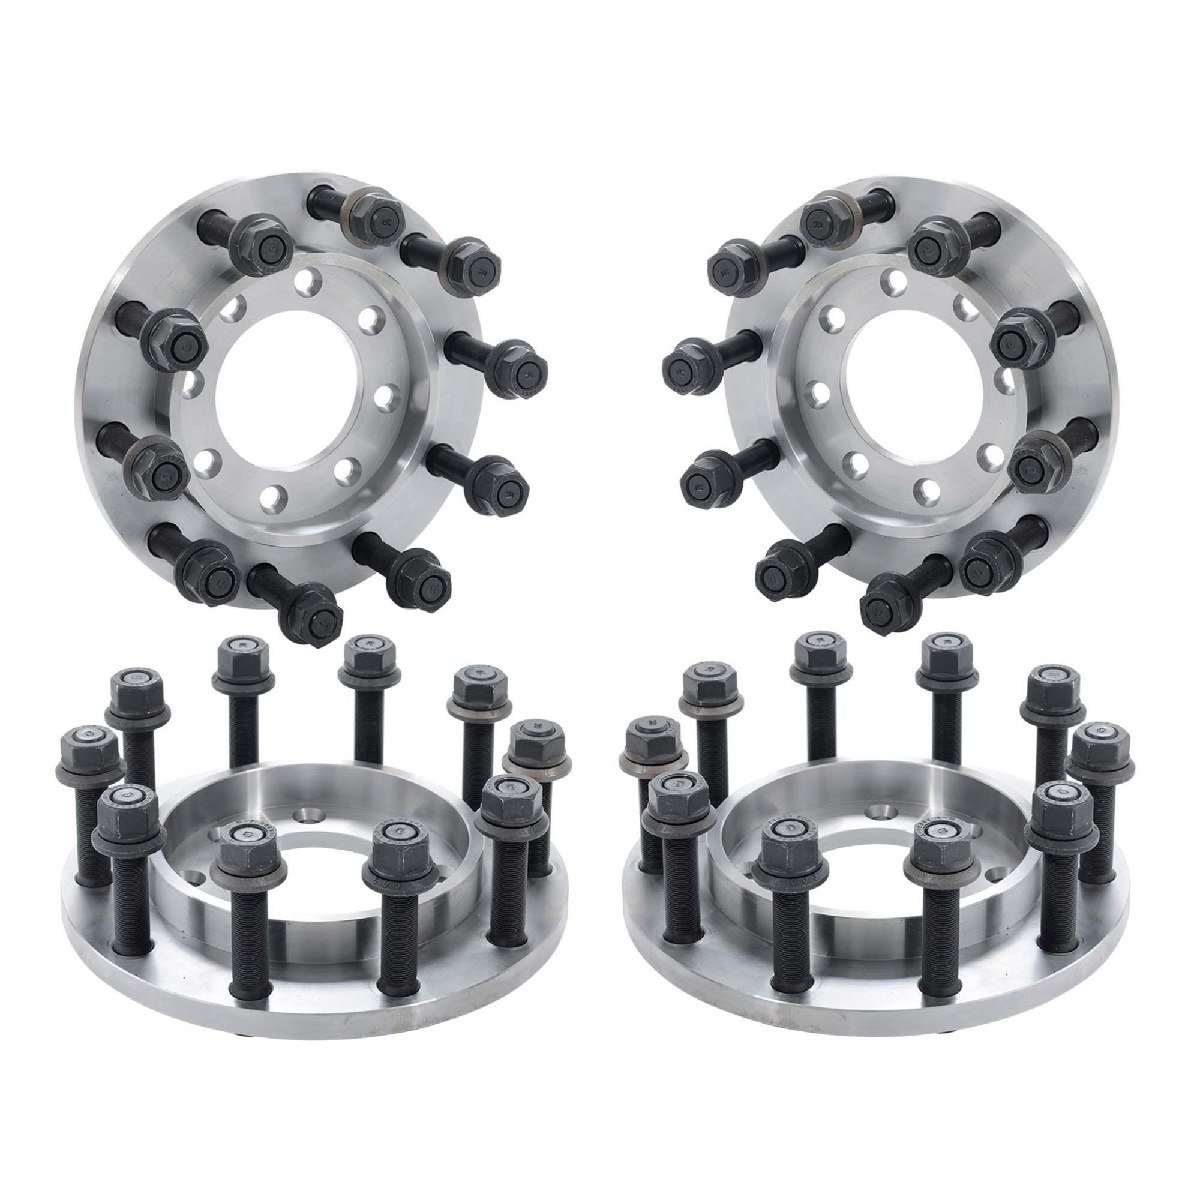 1984-1998 Ford F350 8 To 10 Lug Dually Wheel Adapter Set DP 110